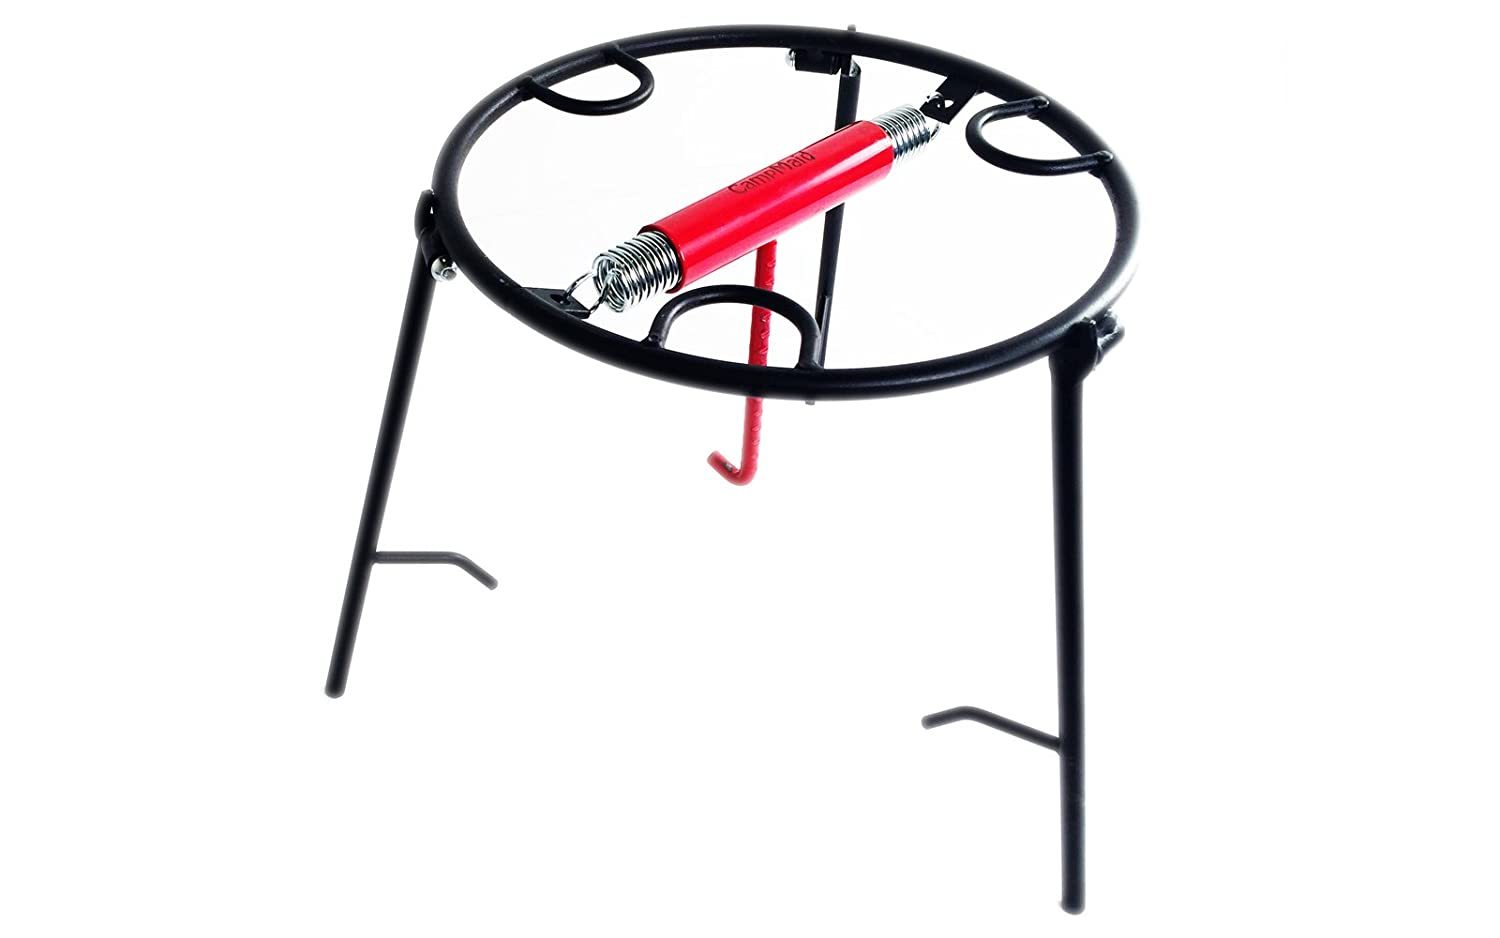 CampMaid Dutch Oven Lid and Pot Holder, Black/Red